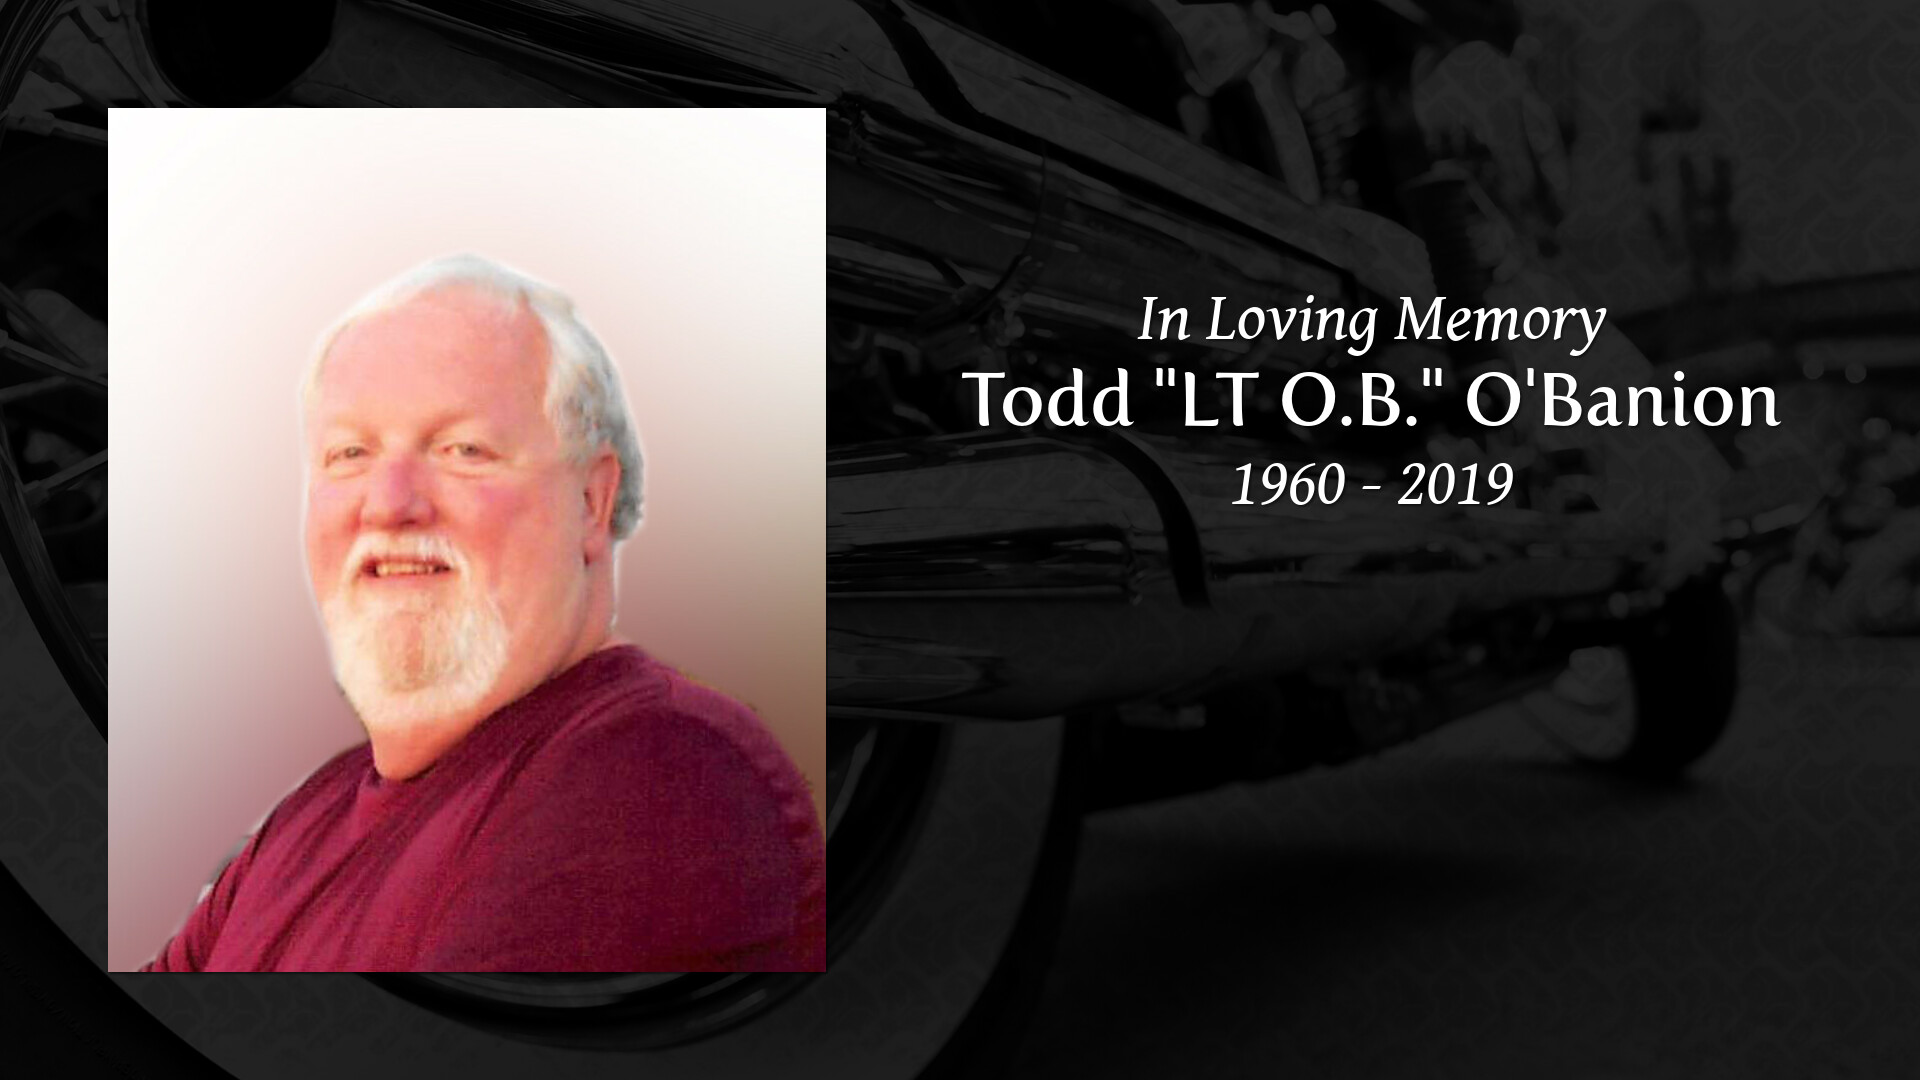 Obituary for Todd